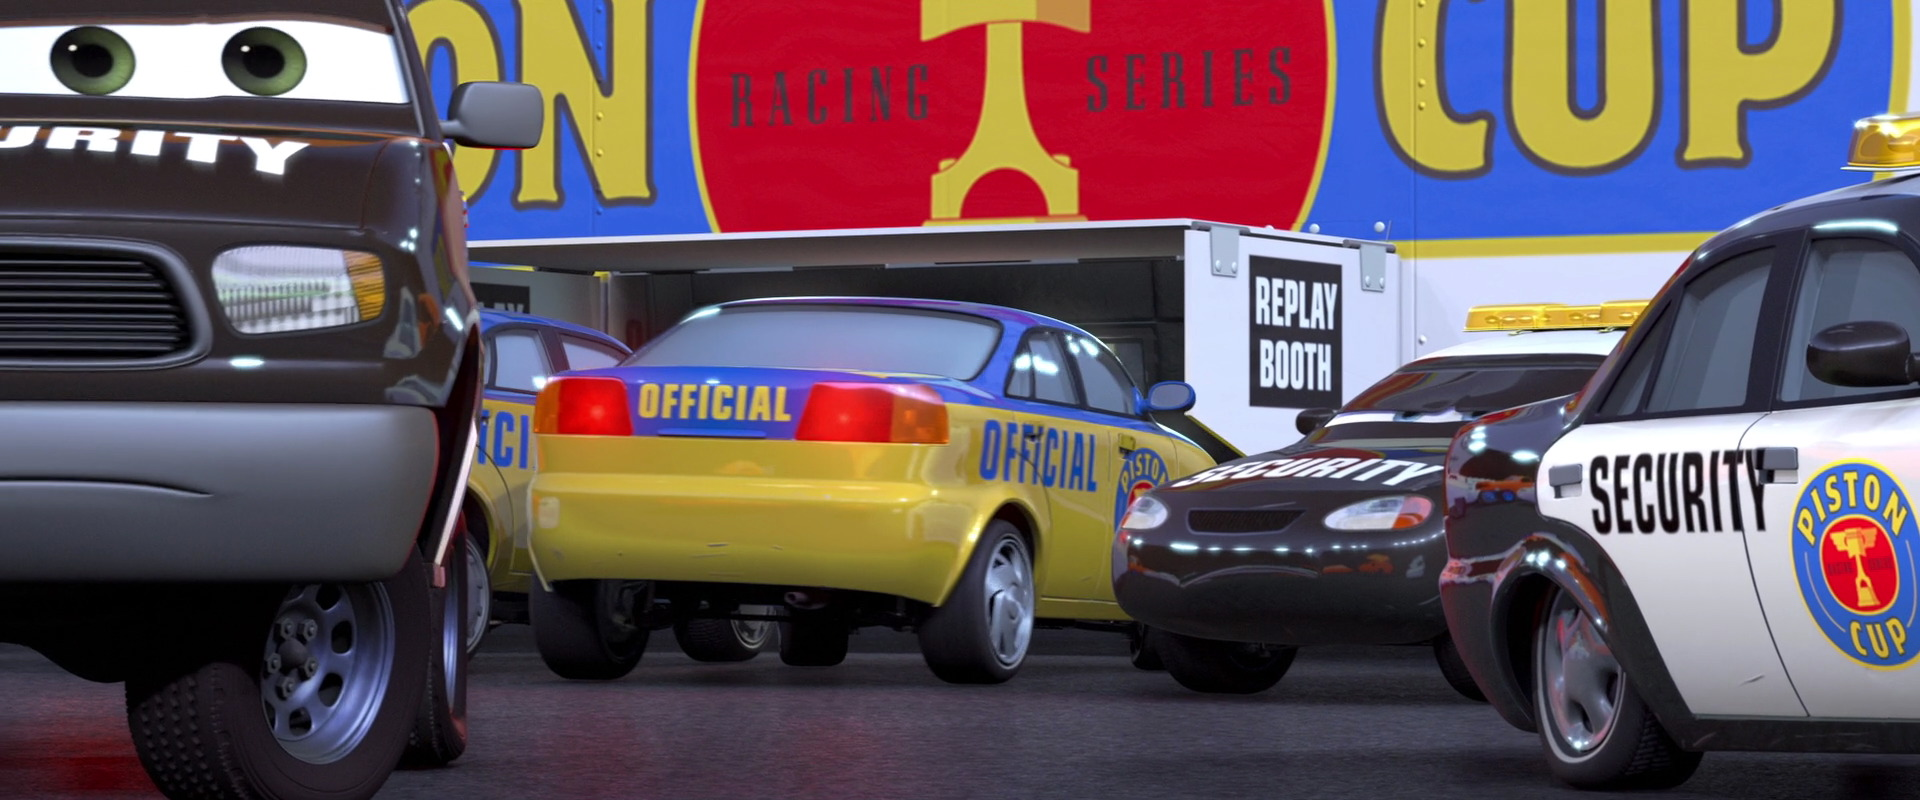 tom personnage character pixar disney cars